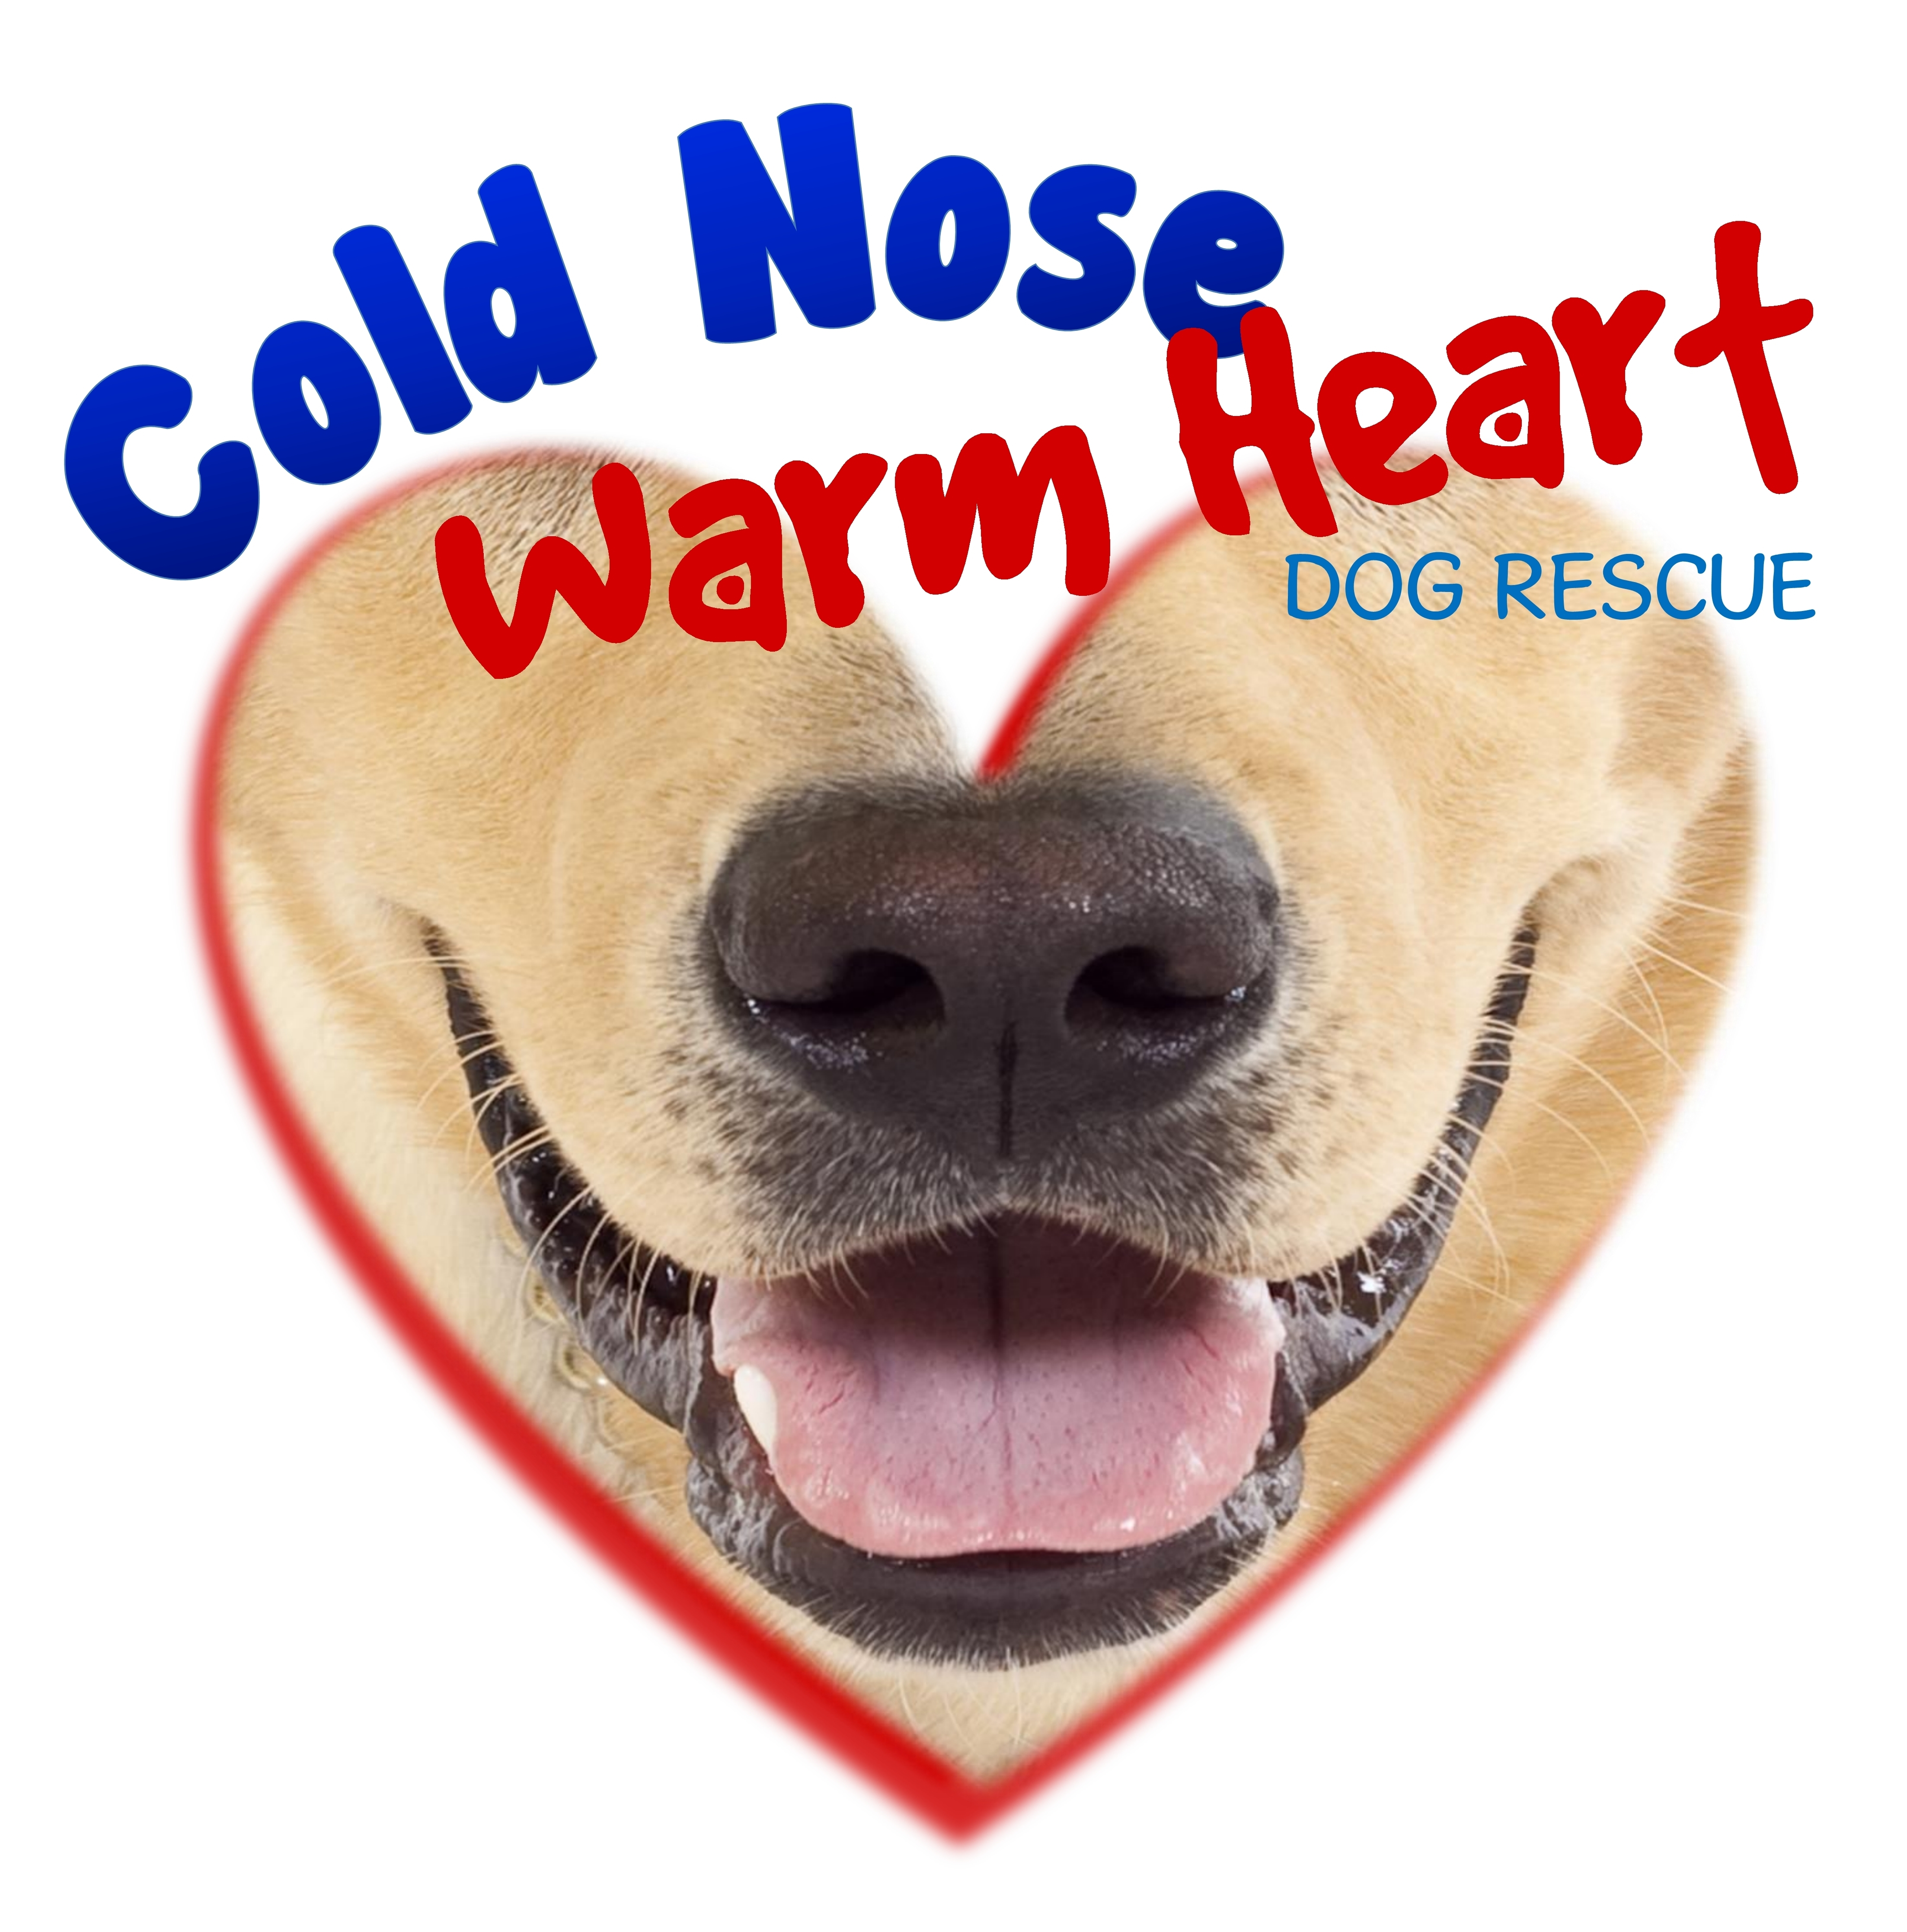 Cold Nose Warm Heart Dog Rescue